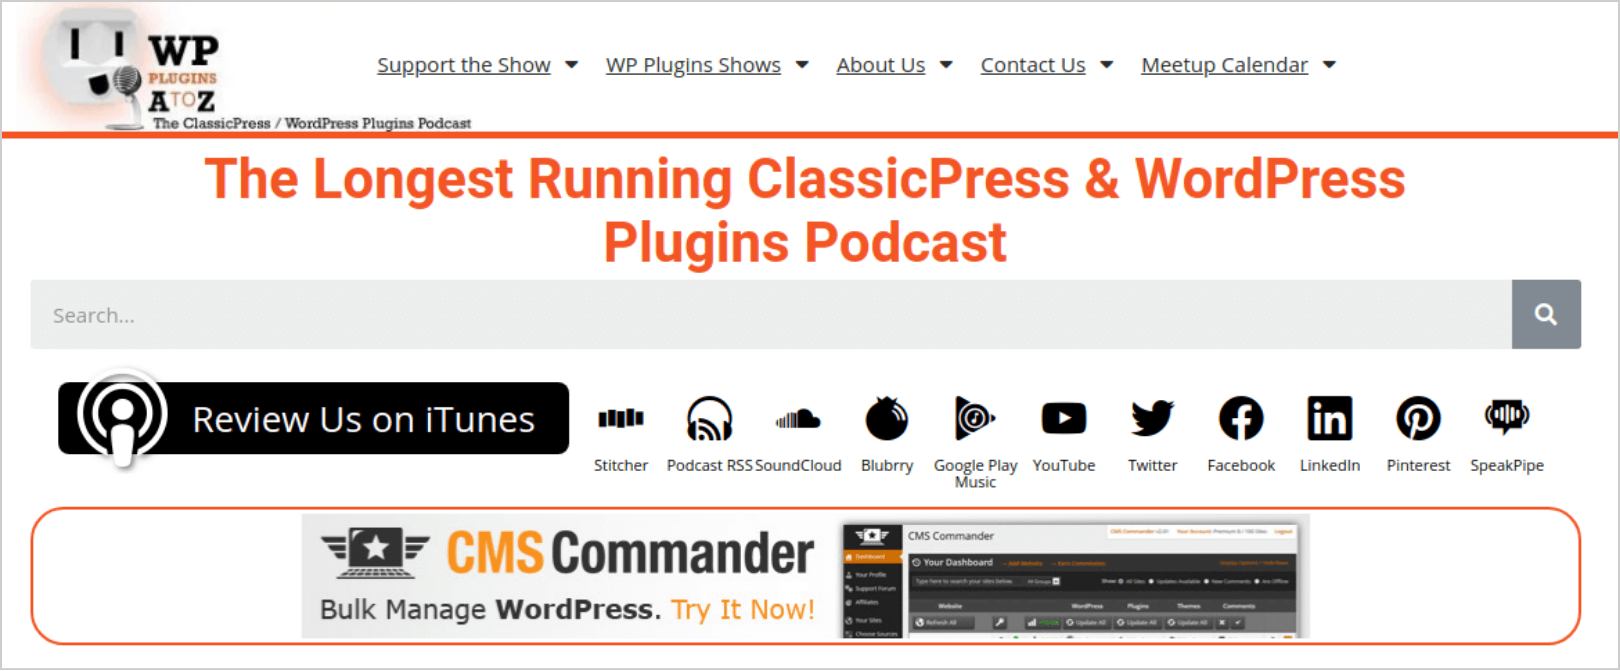 WordPress Plugins from A to Z